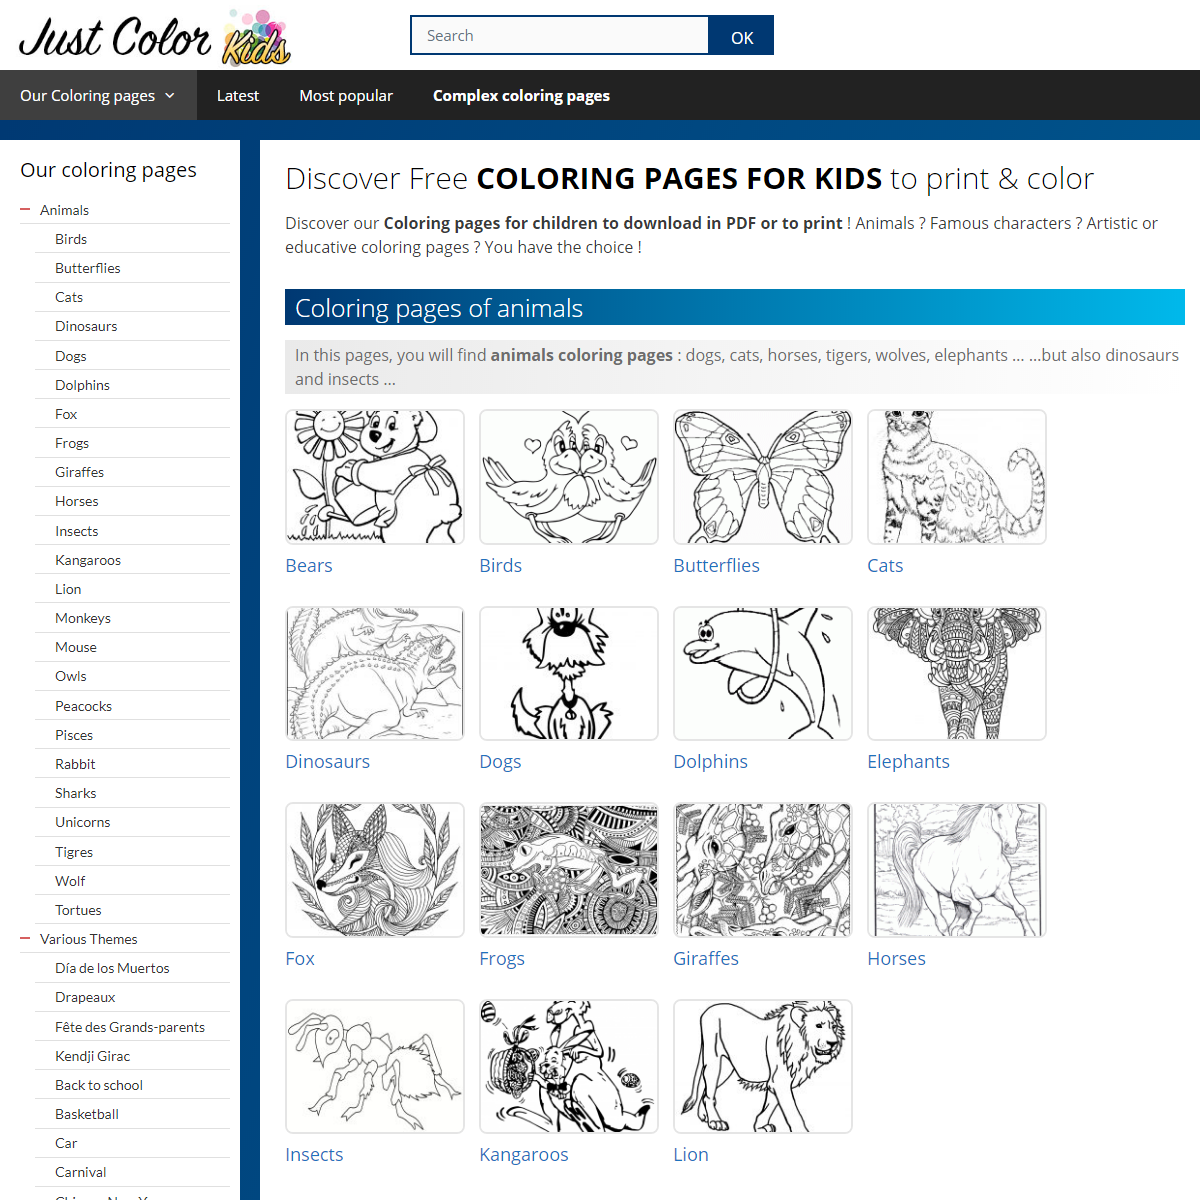 Coloring Pages for Kids · Download and Print for Free ! - Just Color Kids